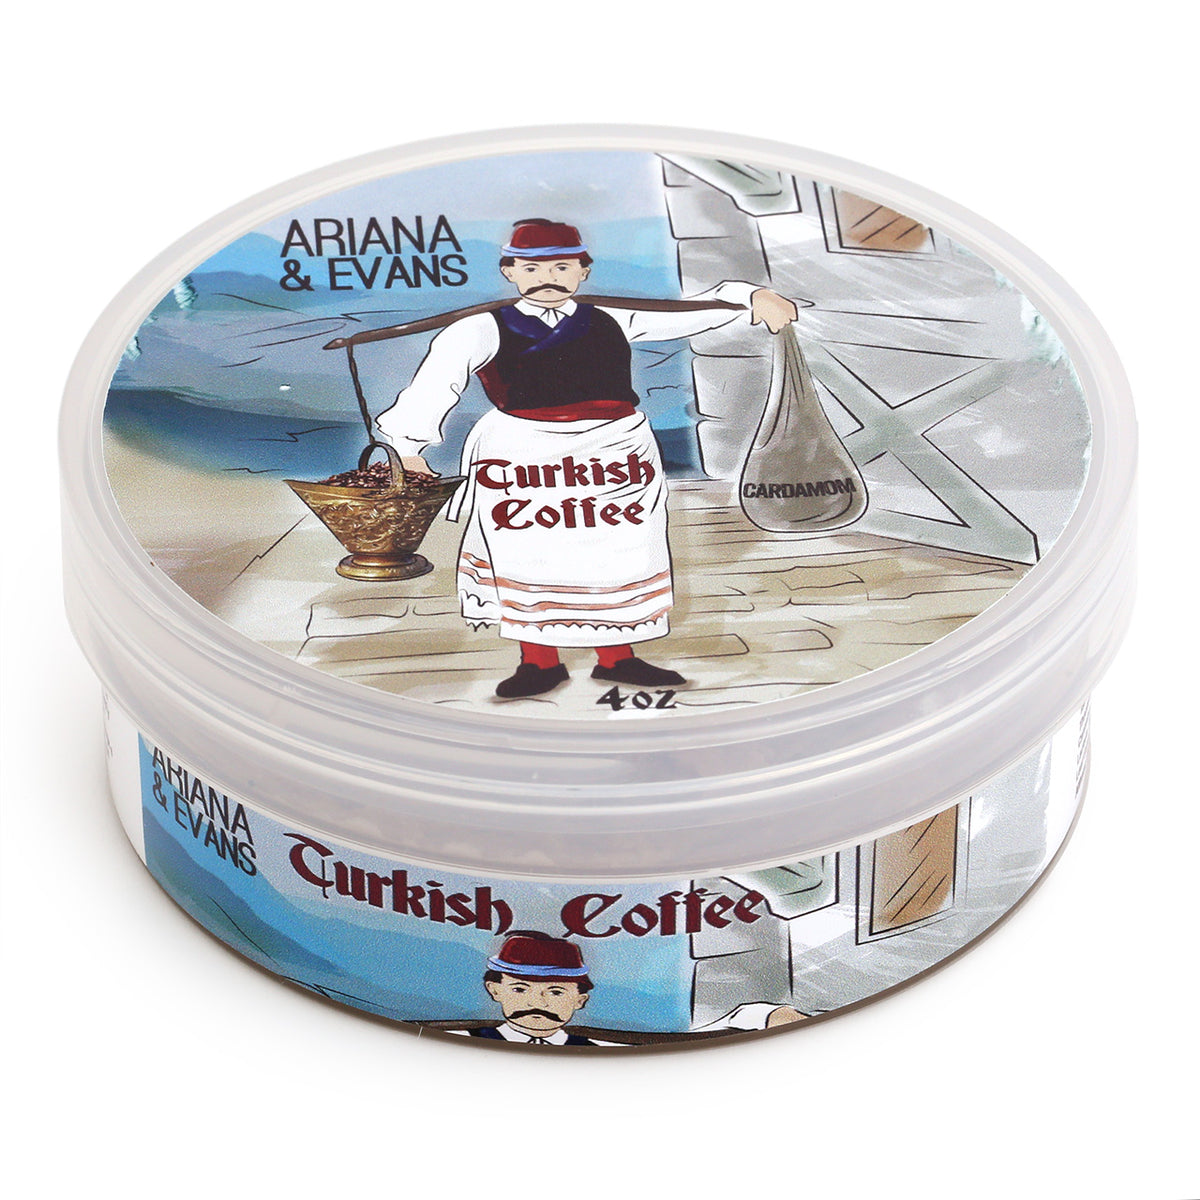 Ariana & Evans Shave Soap Turkish Coffee - 118ml Tub, 3/4 view